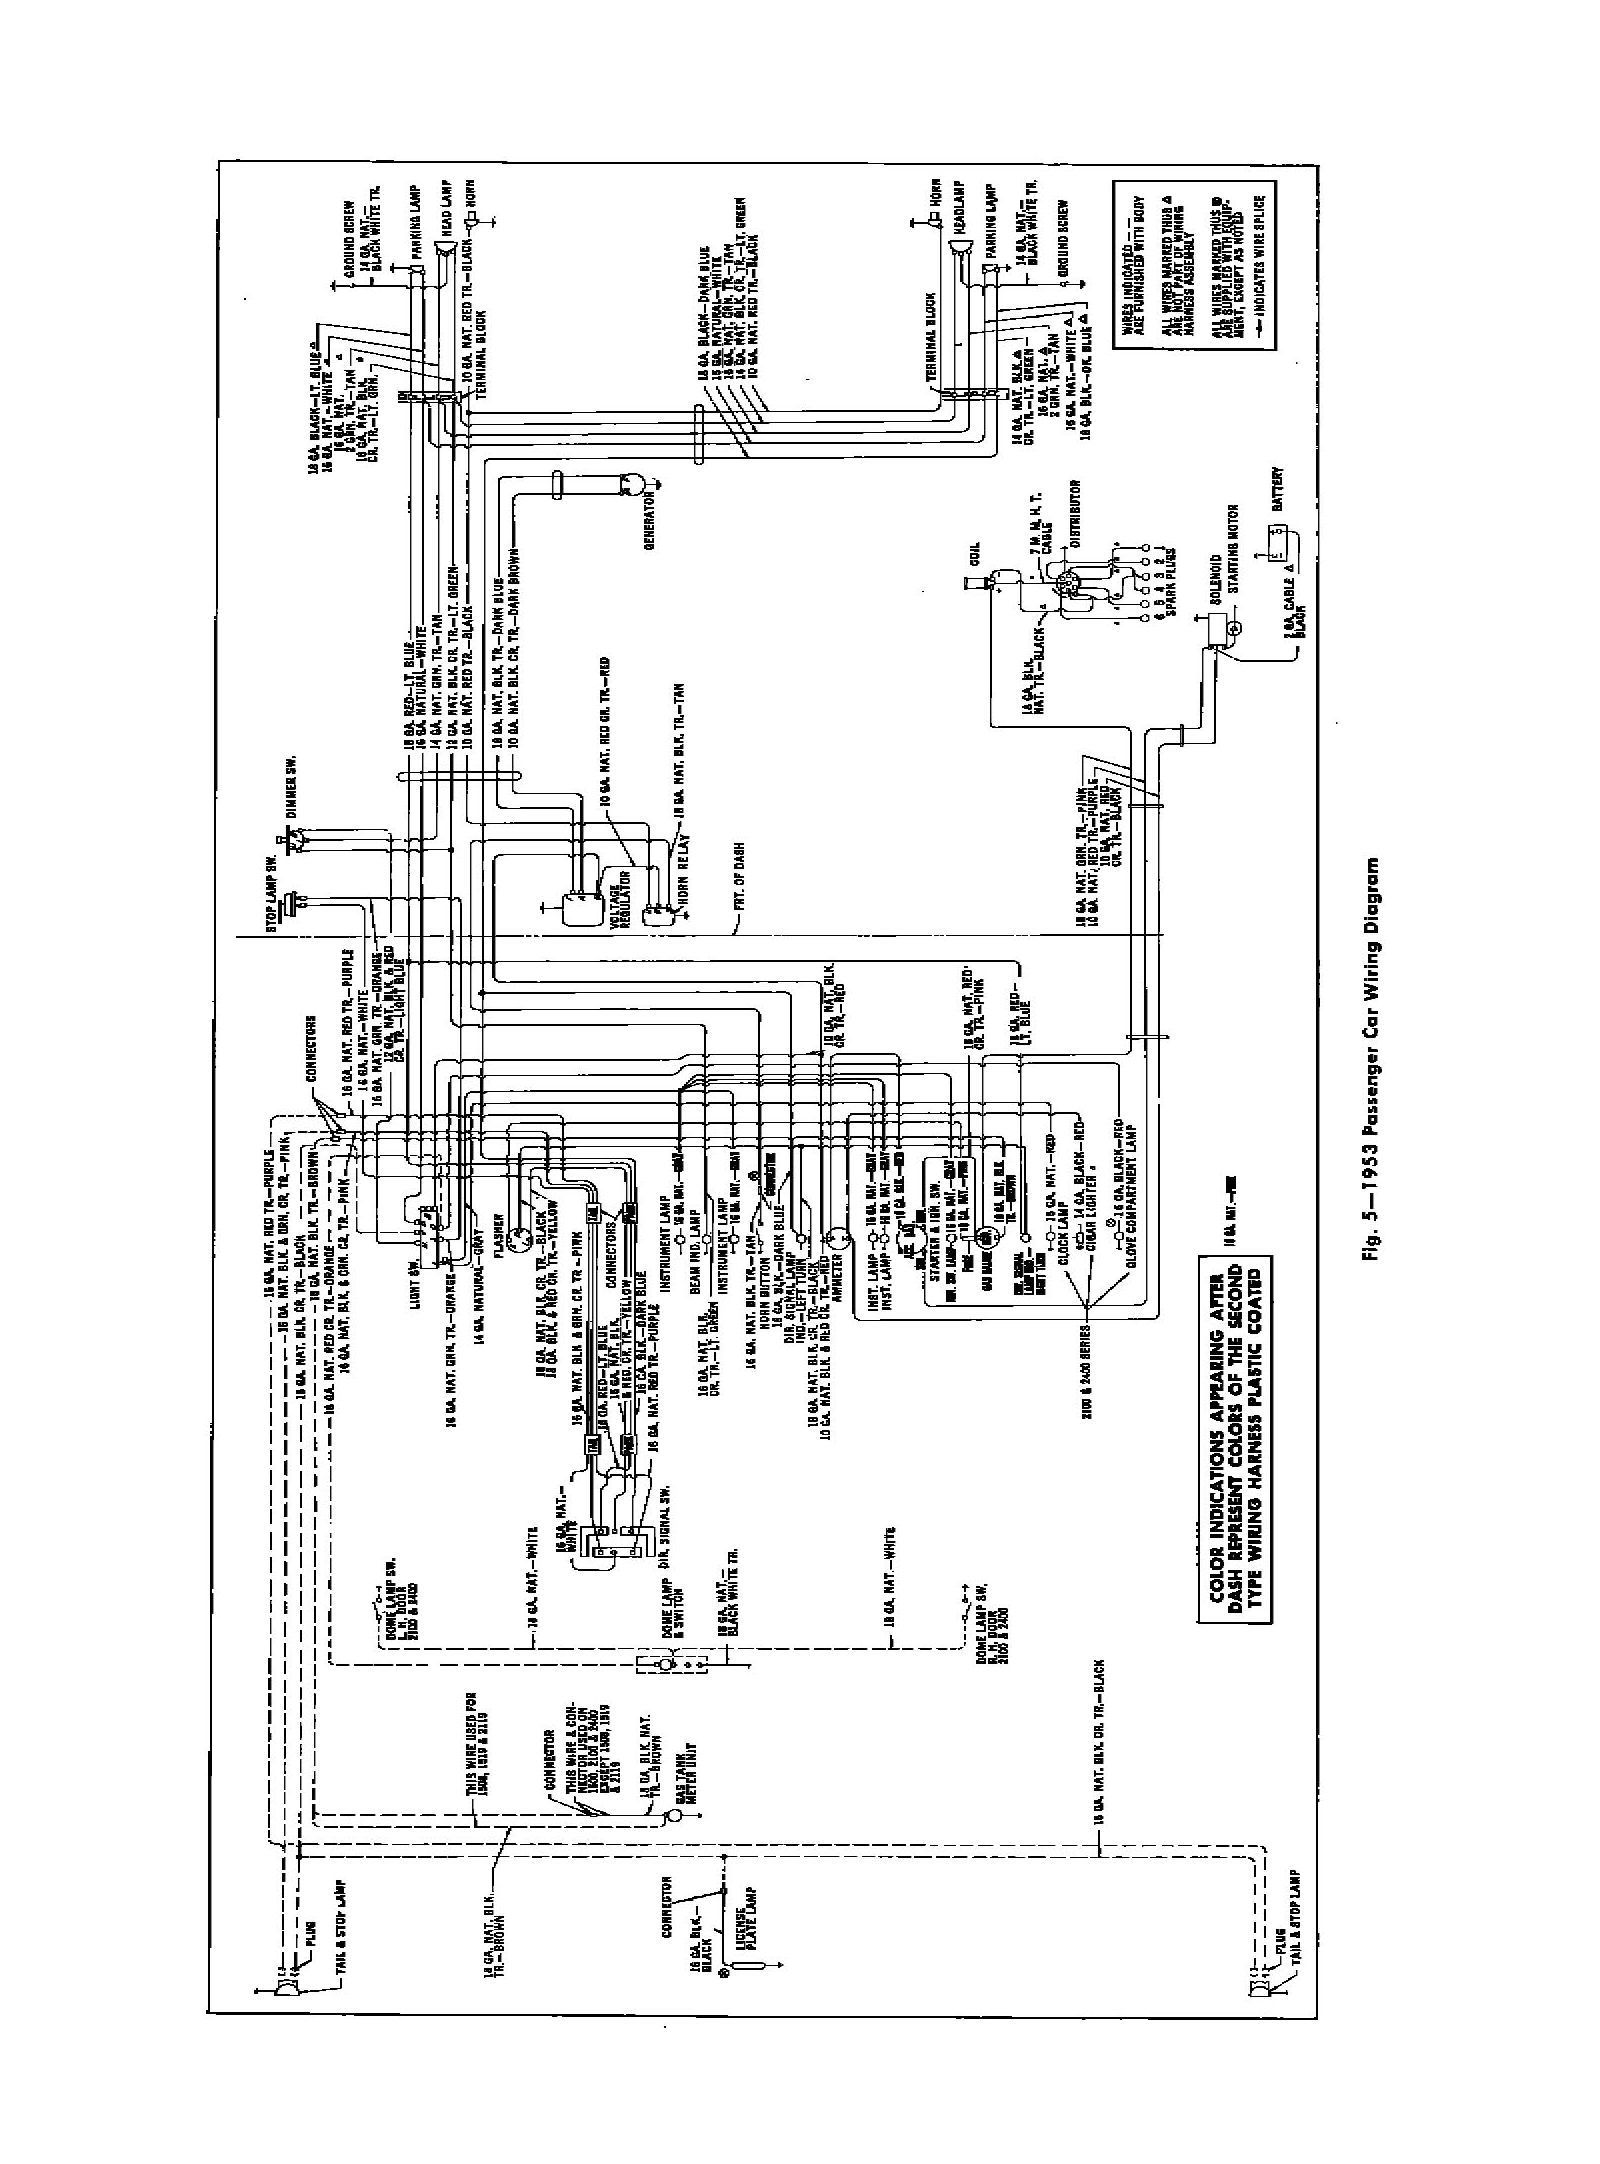 1953 chevy wiring diagram wiring diagrams 1953 chevy truck wiring harness [ 1600 x 2164 Pixel ]